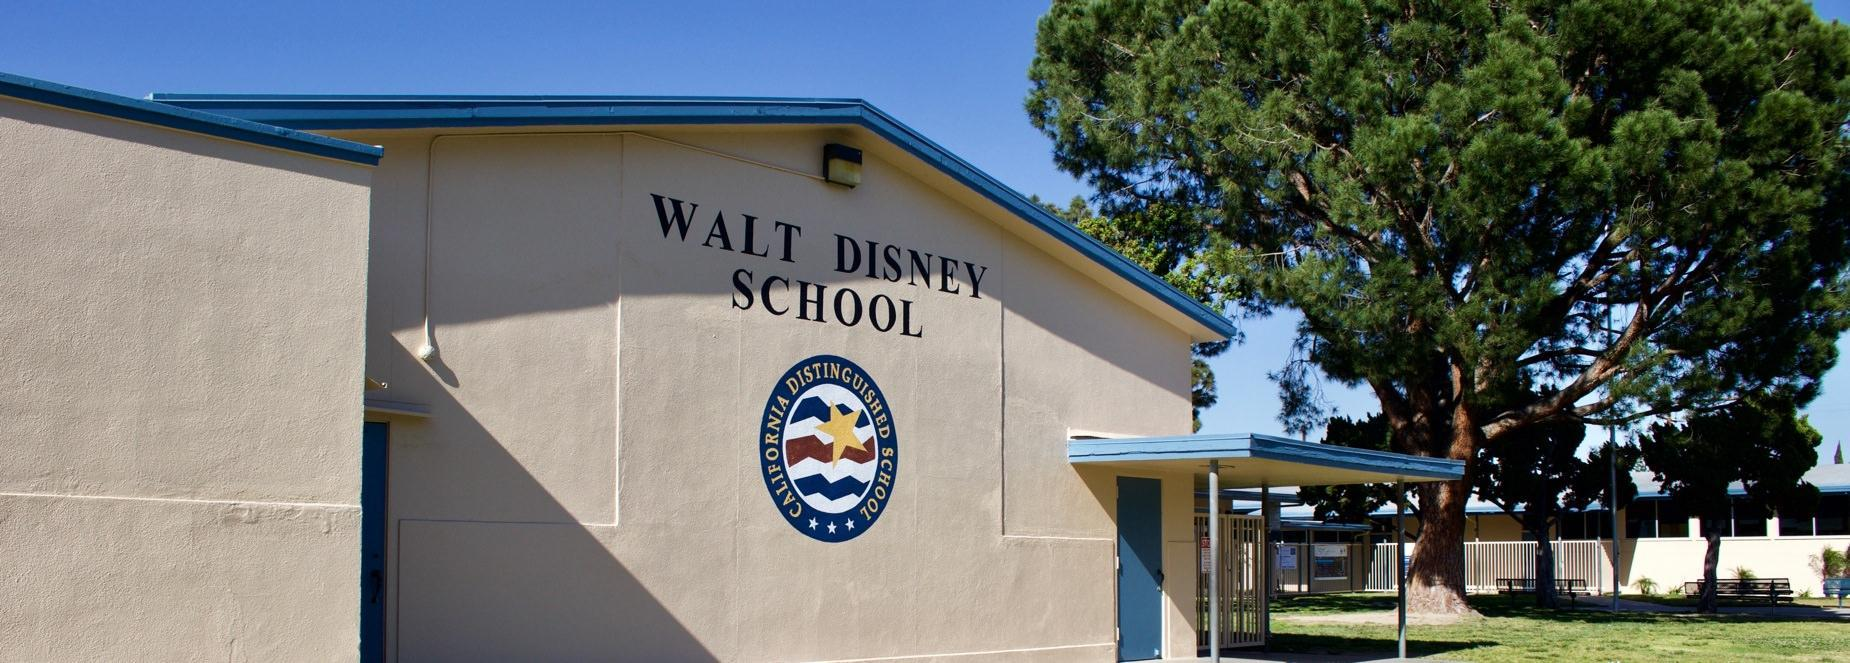 Walt Disney School